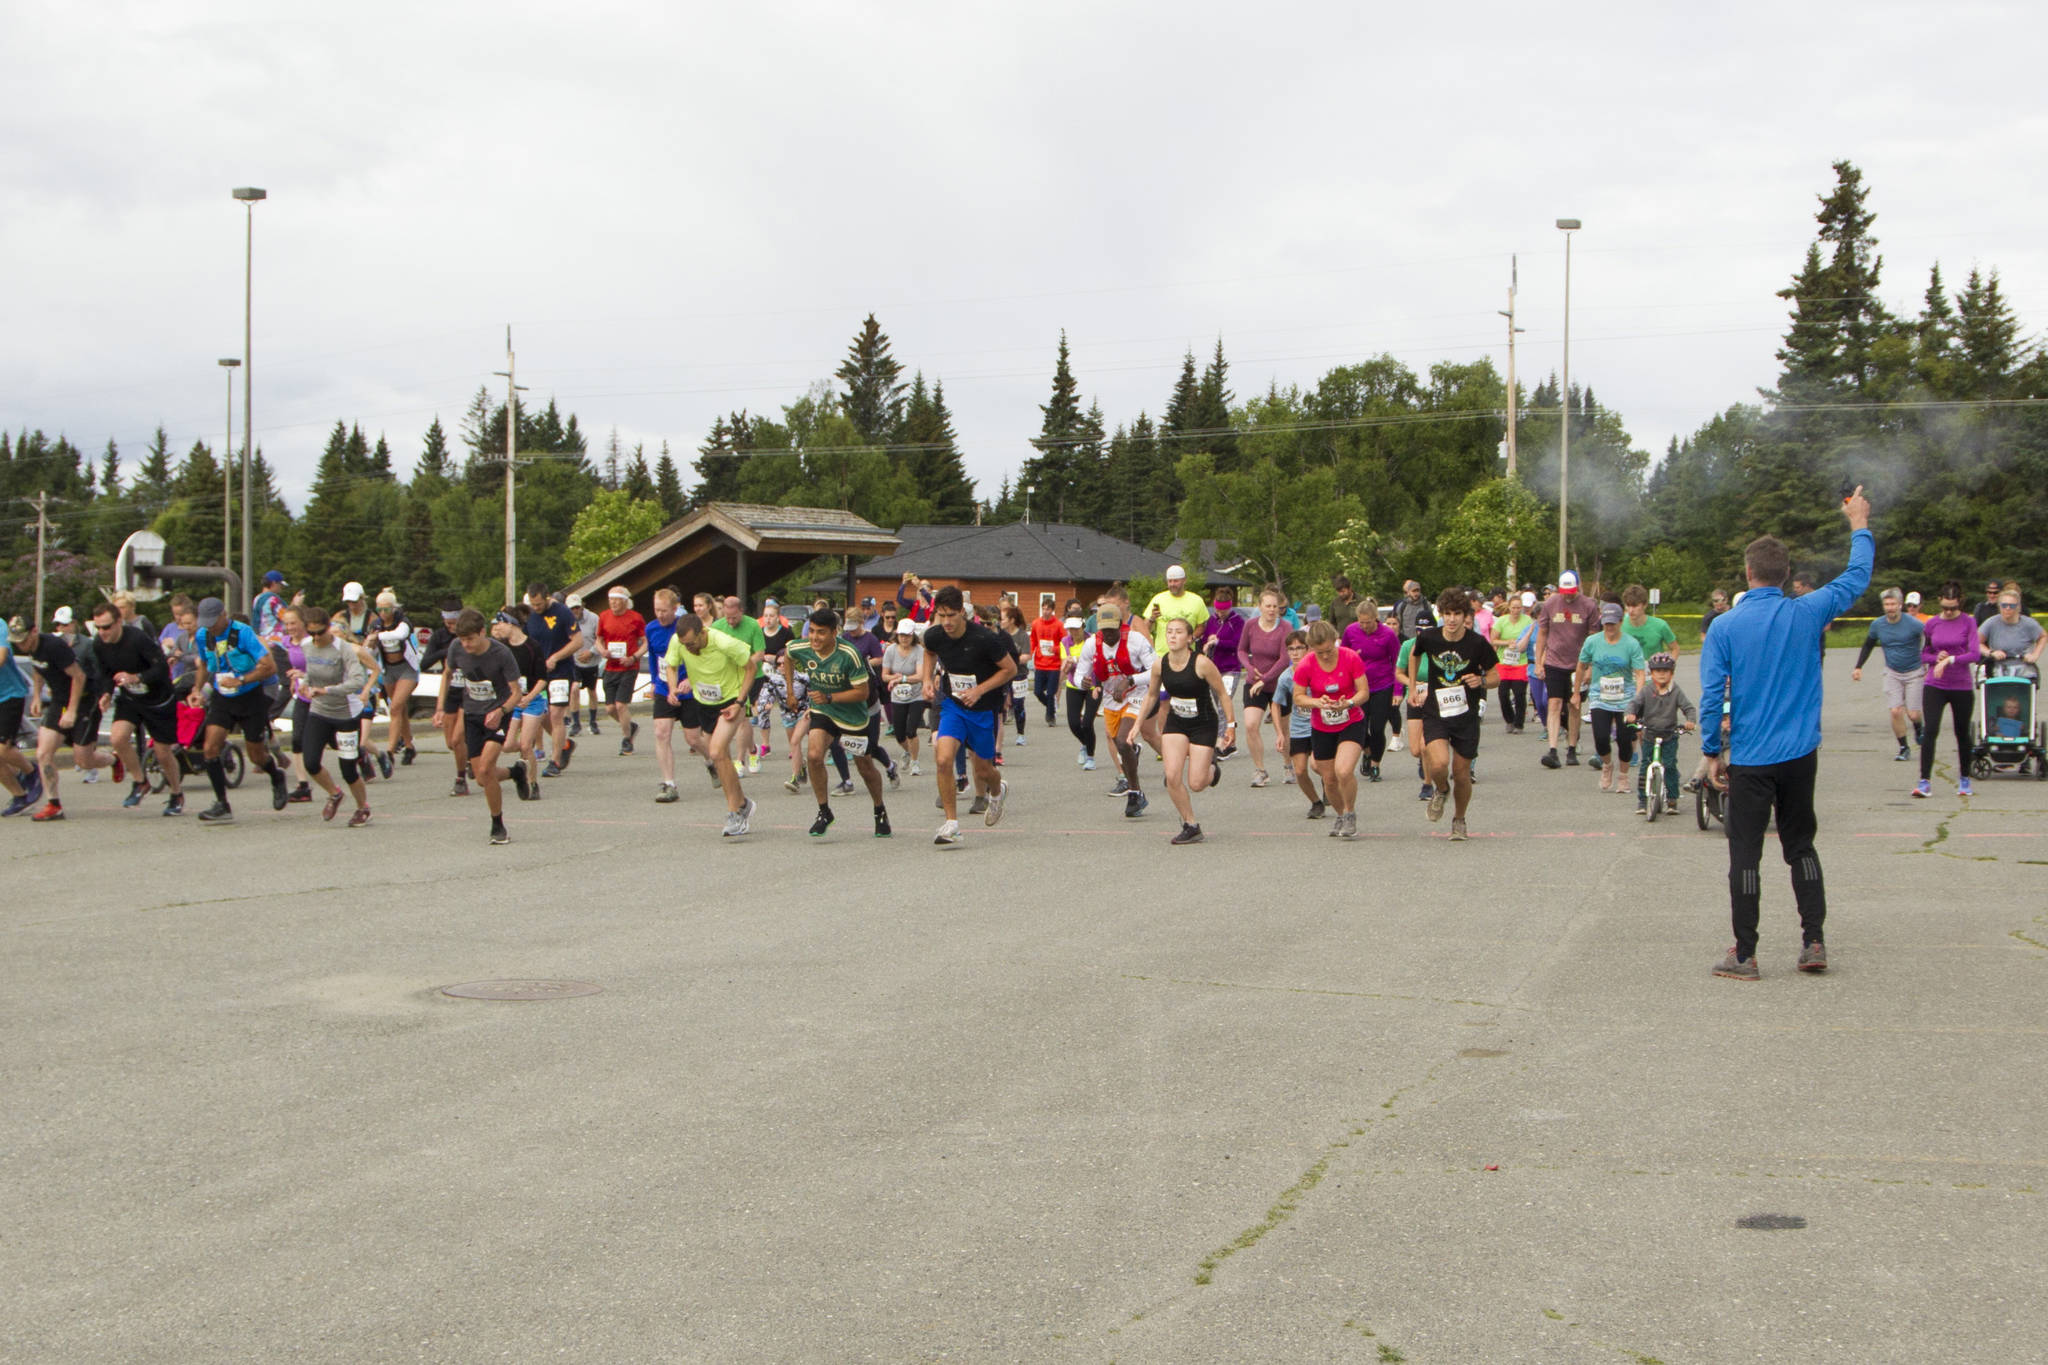 More than 140 runners participated in the 10K to the Bay run on Saturday, June 26. The race began at Homer High School and finished at Land's End on the Spit. (Photo by Sarah Knapp/Homer News)